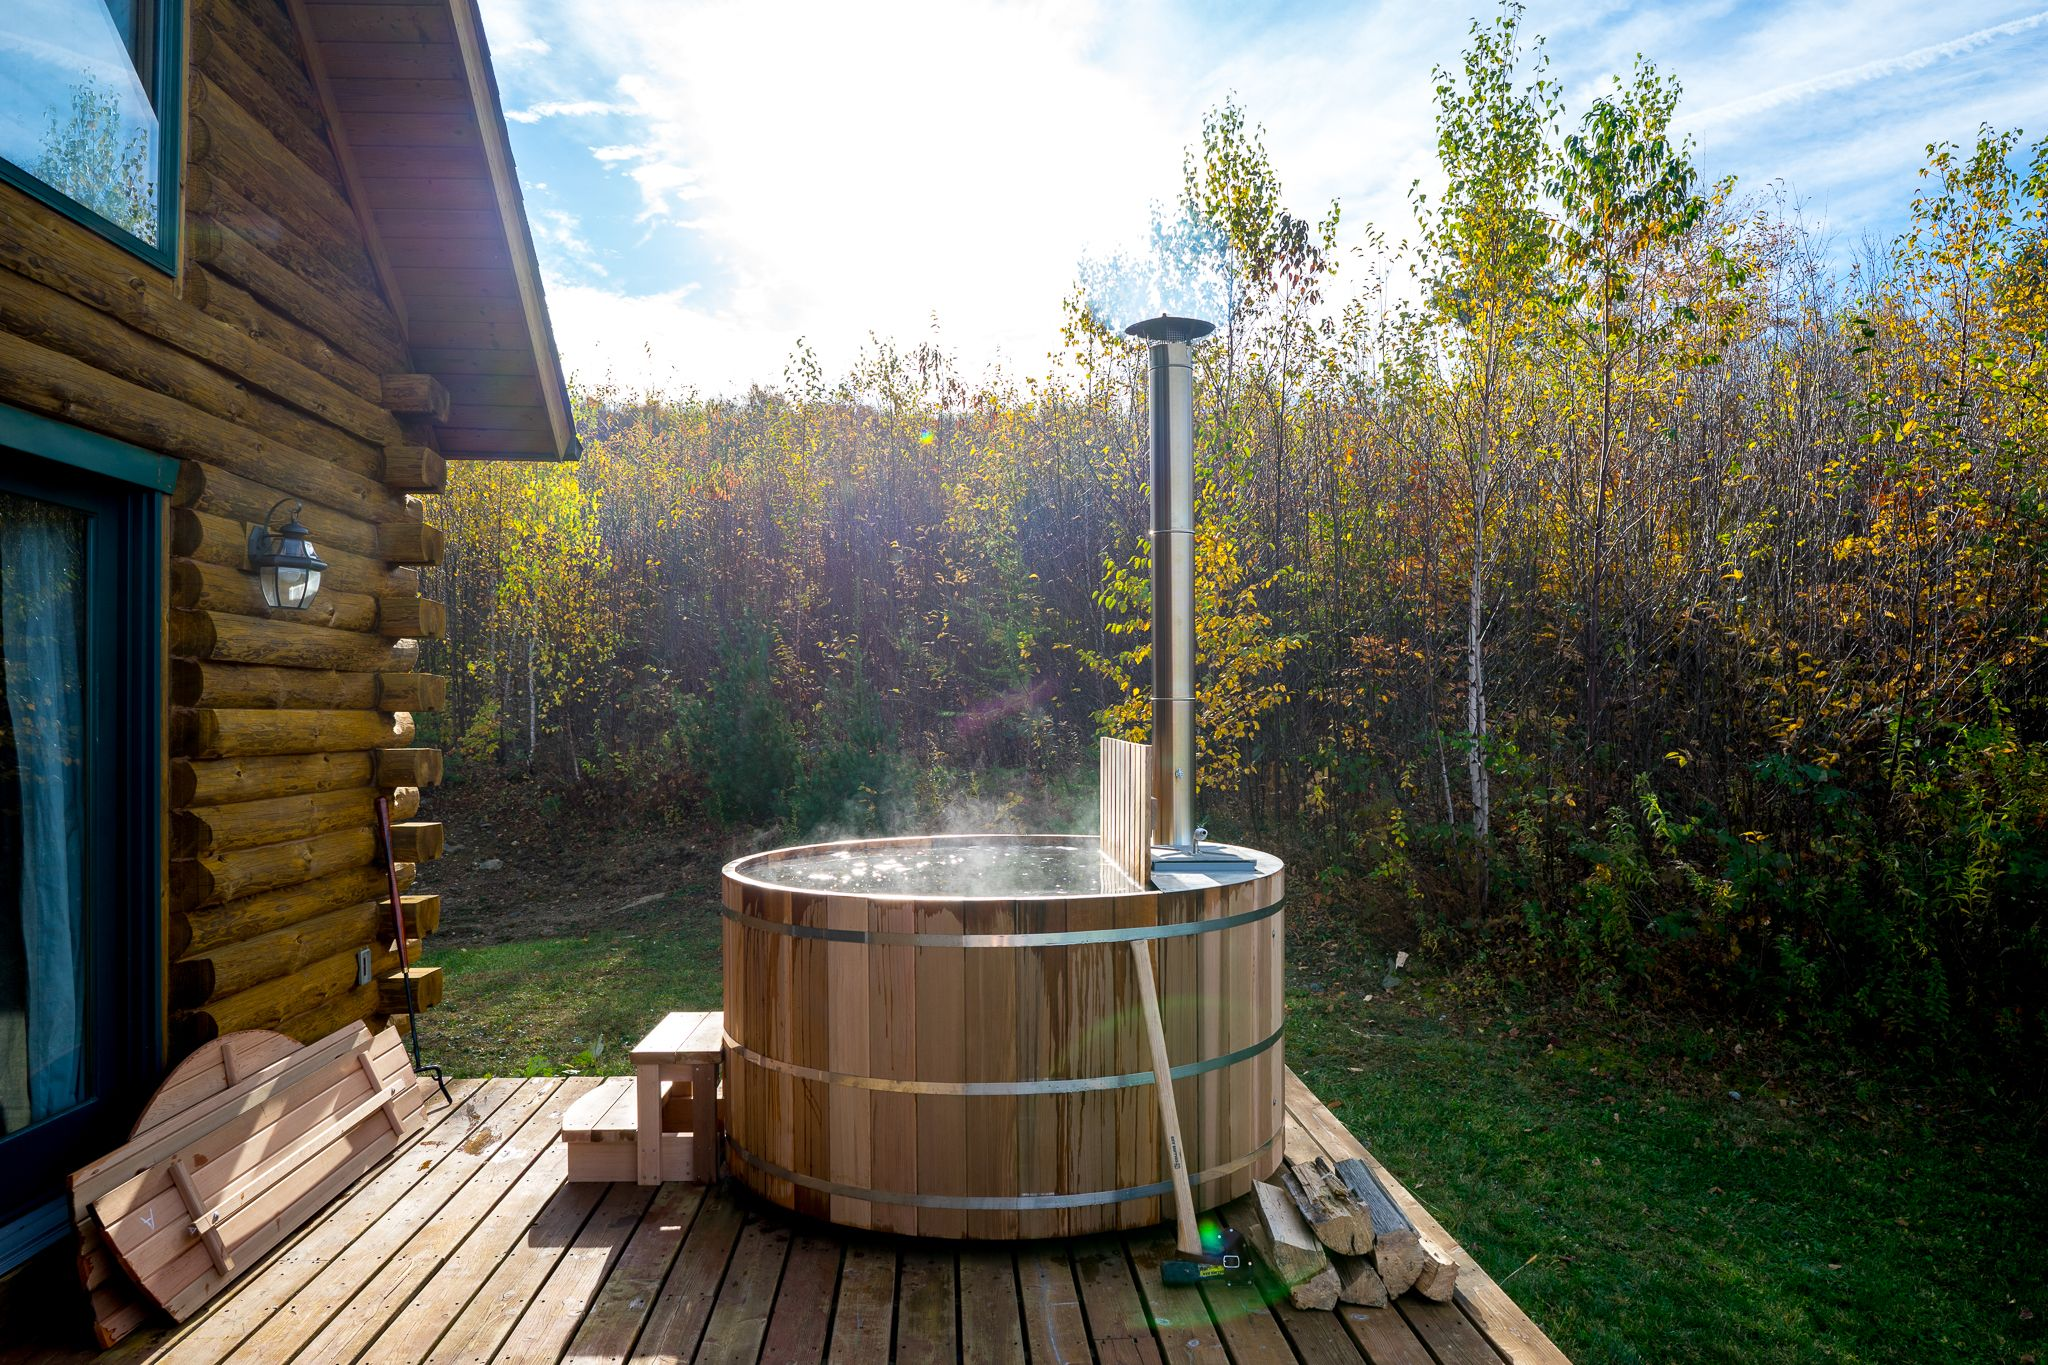 How to Build a Wood-Fired Hot Tub